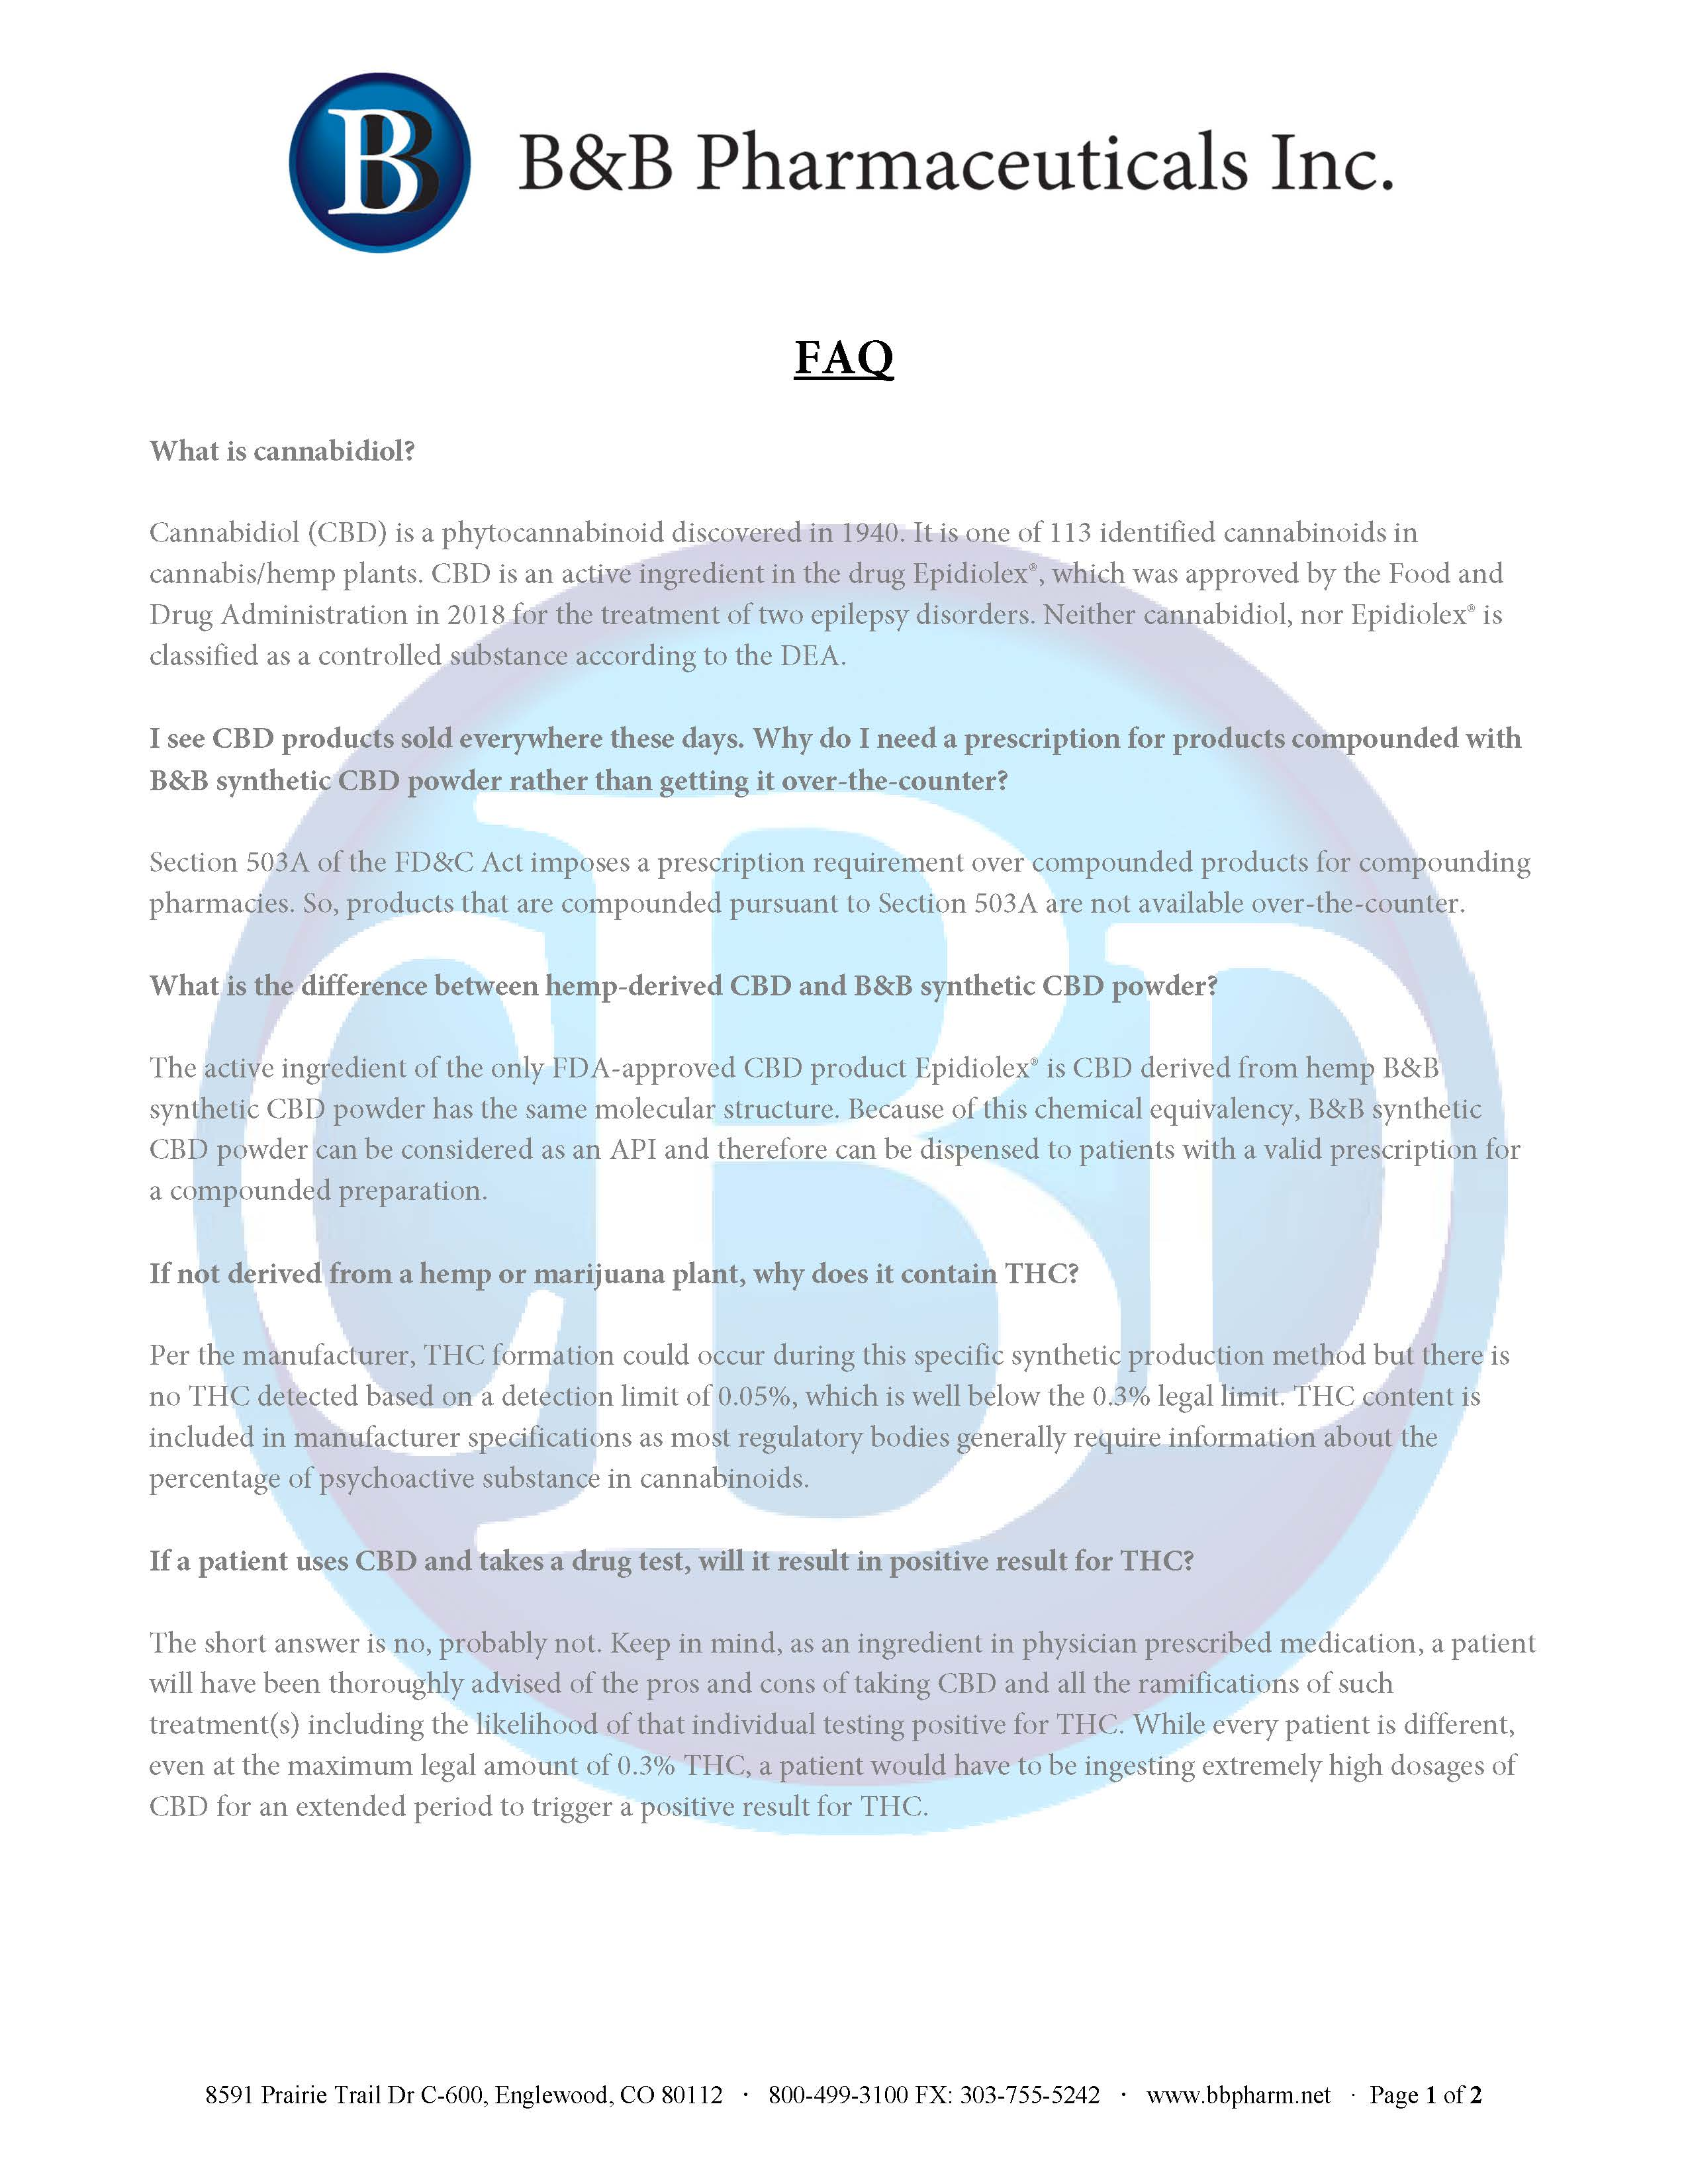 B_B Cannabidiol Sale Flyer _ FAQ_Page_2.jpg